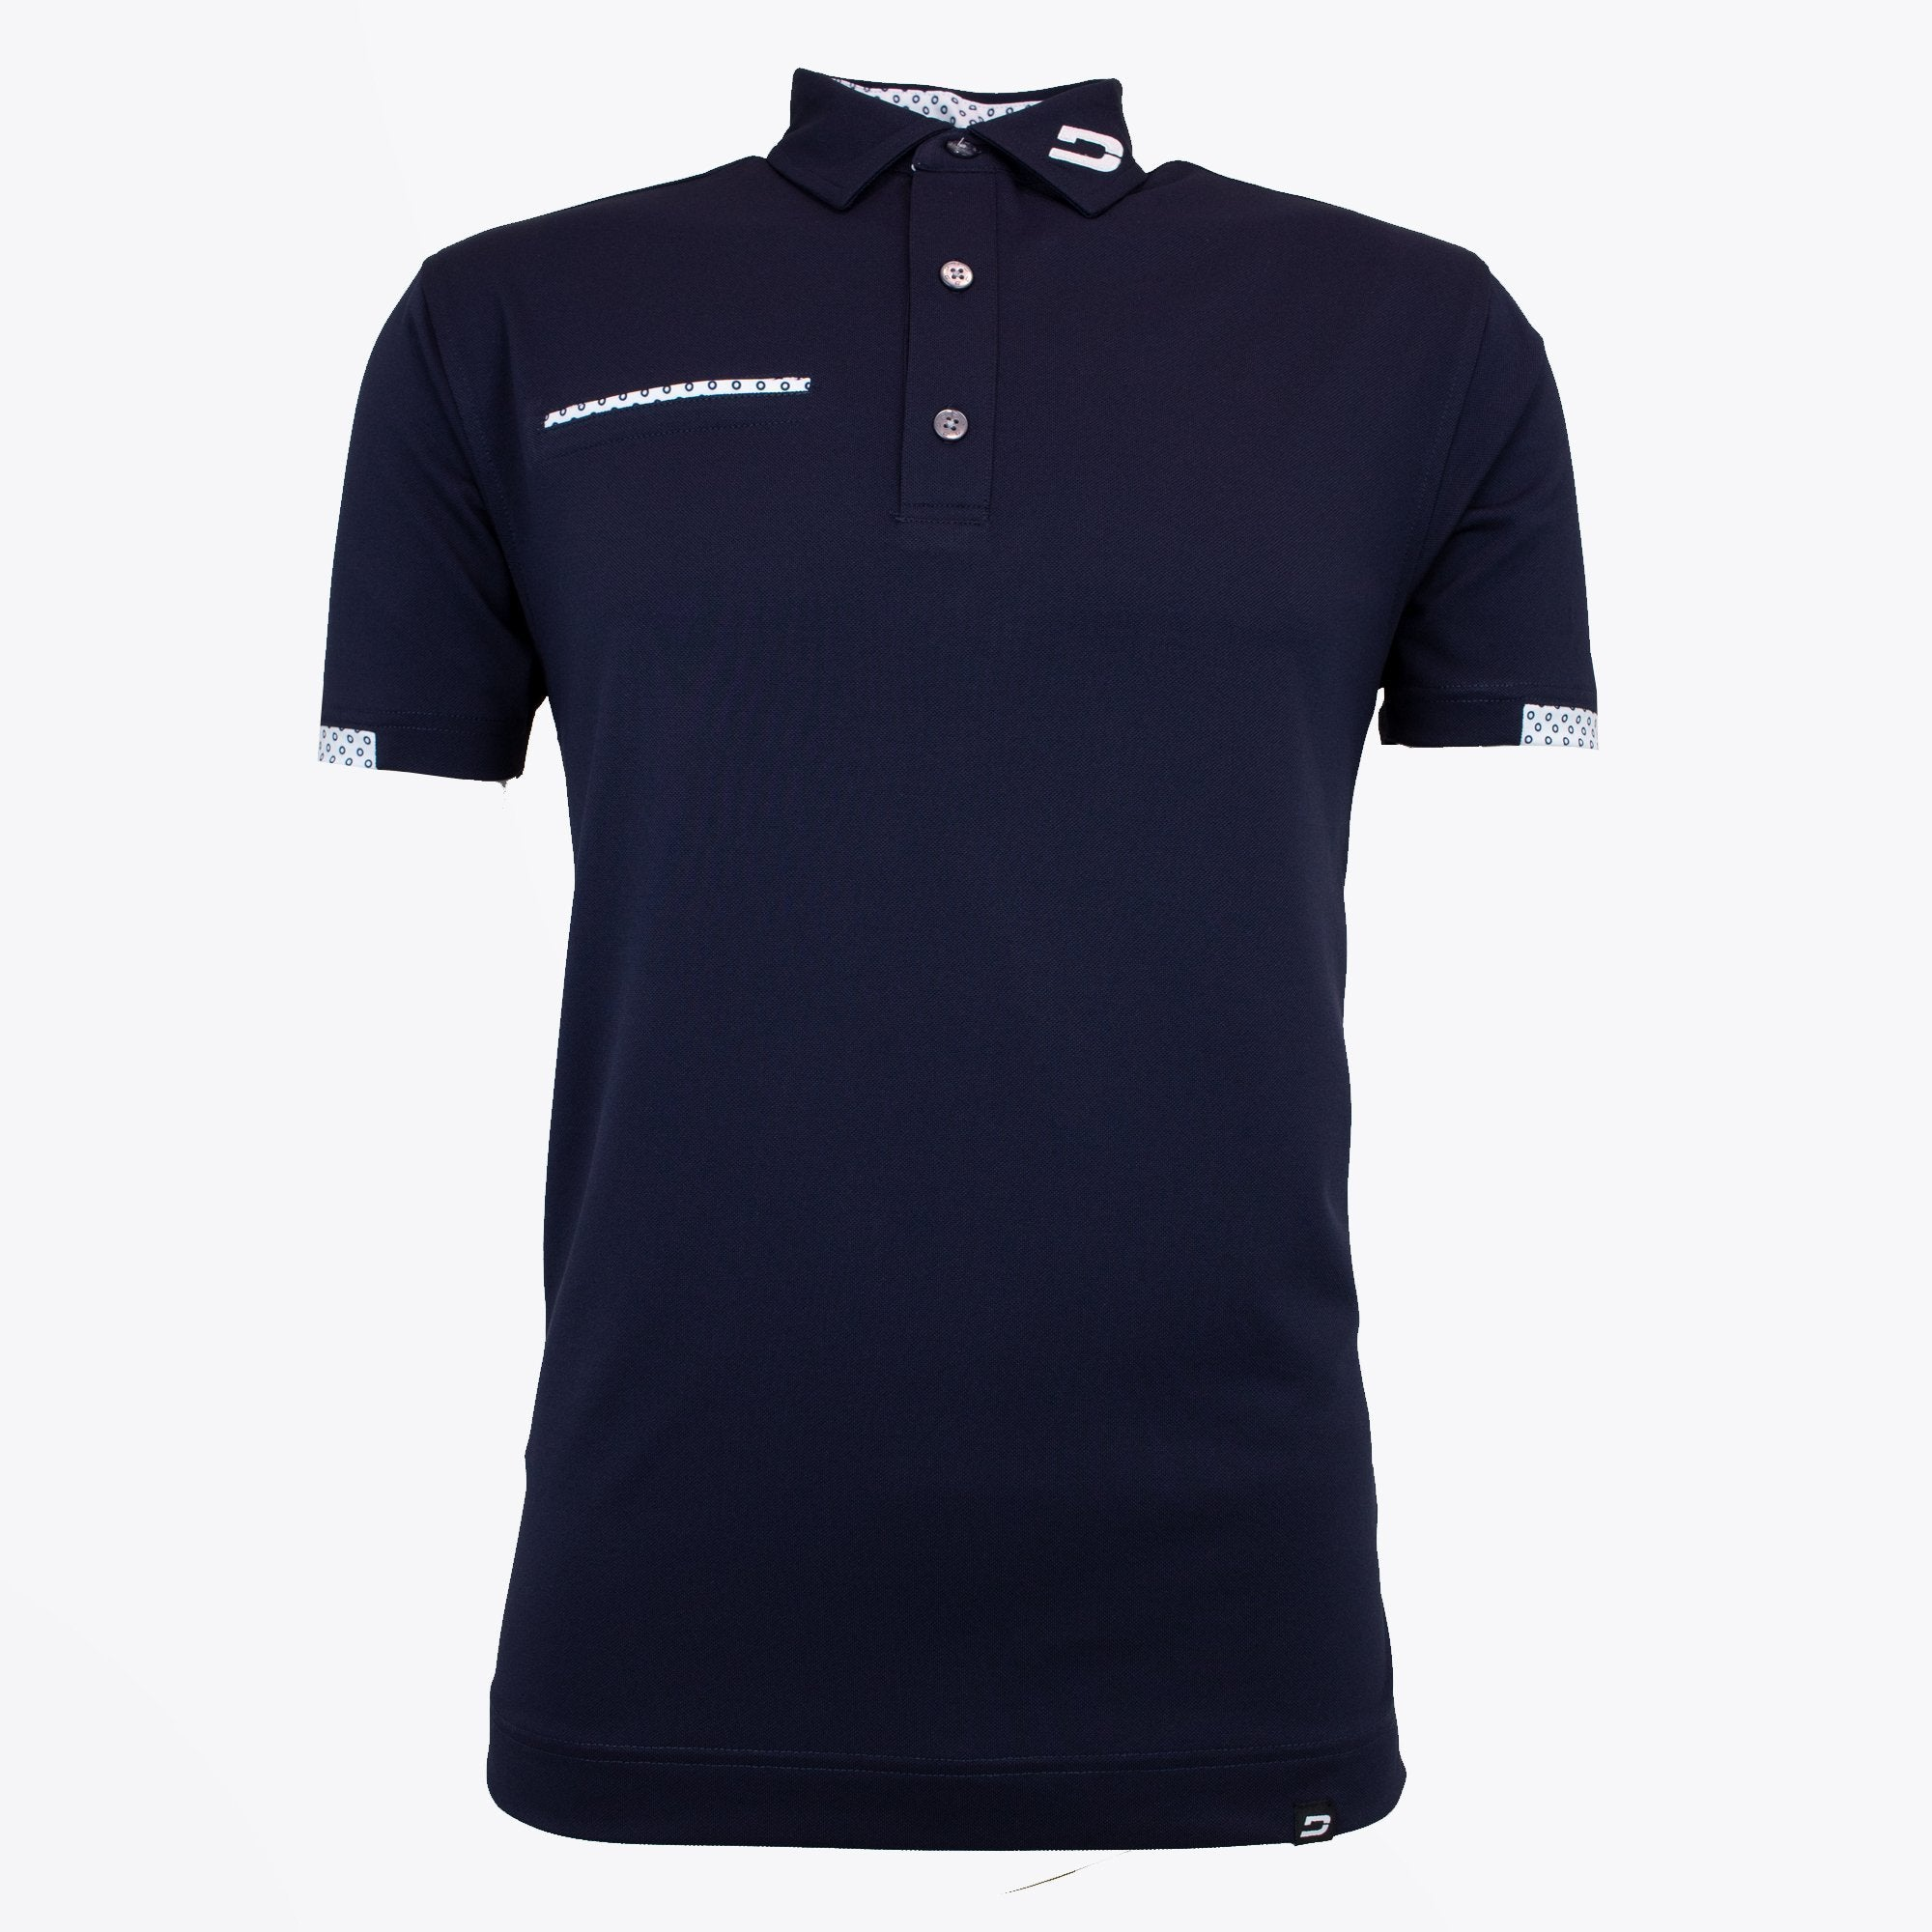 Druids Golf - Mens Fashion Pocket Polo (Navy)